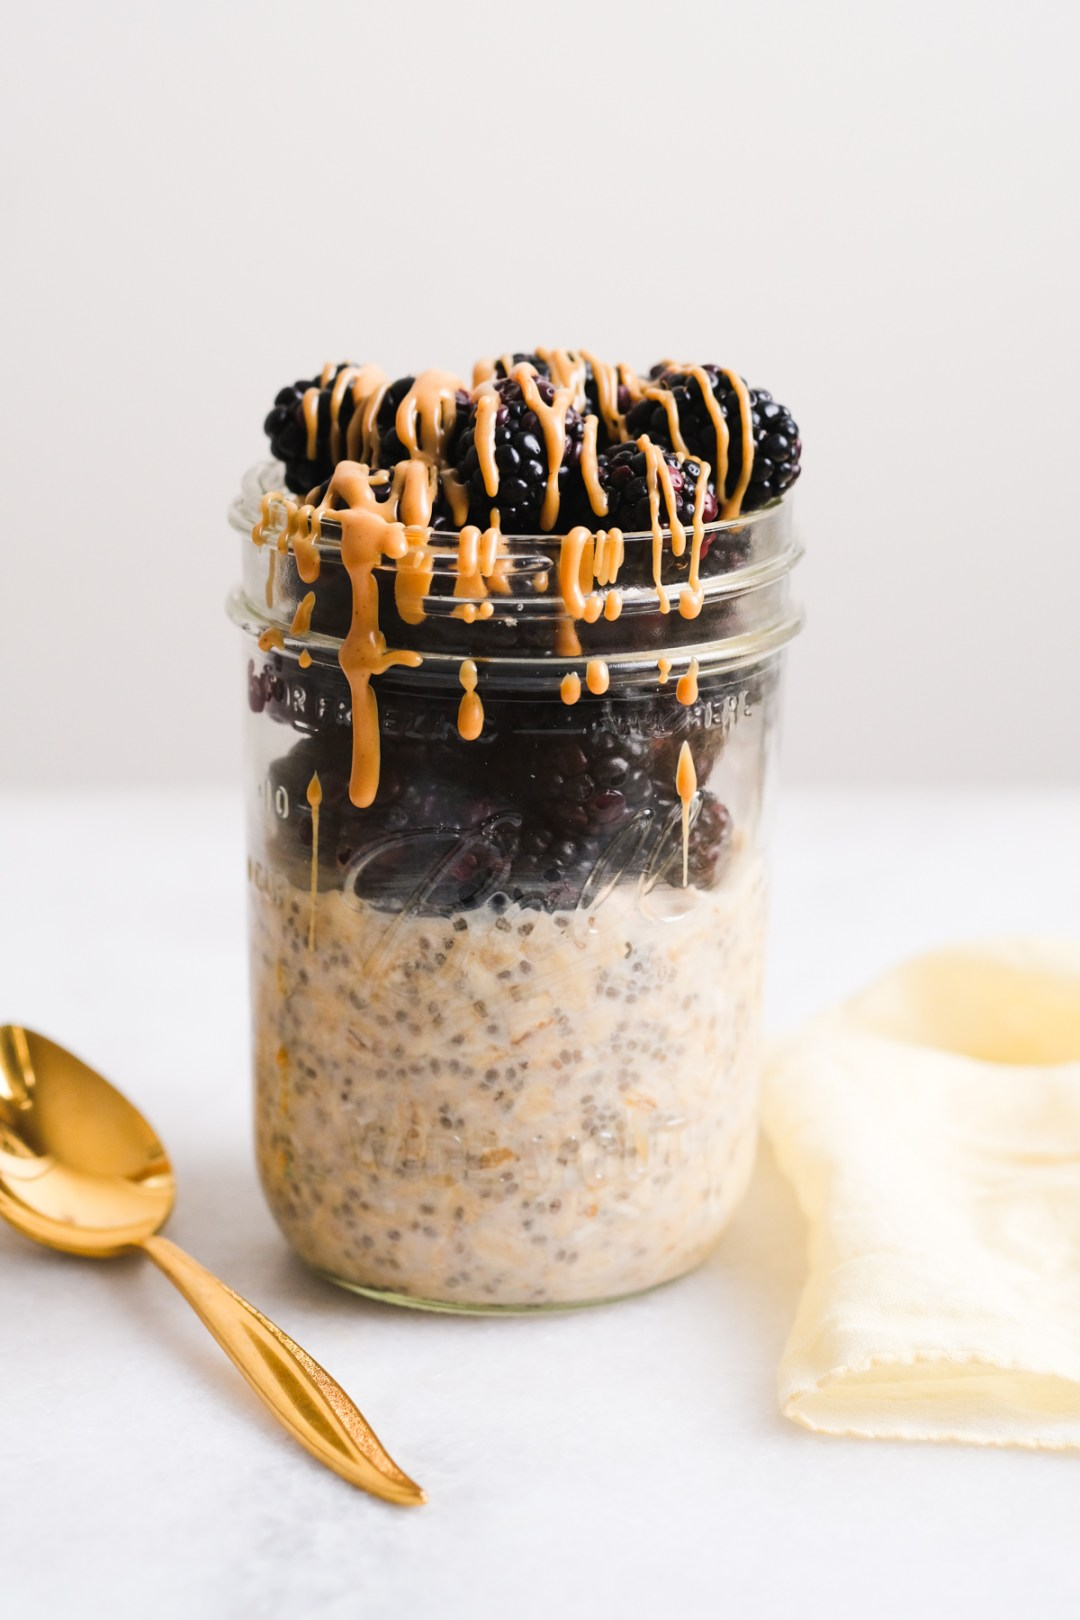 peanut butter overnight oats with fresh blackberries